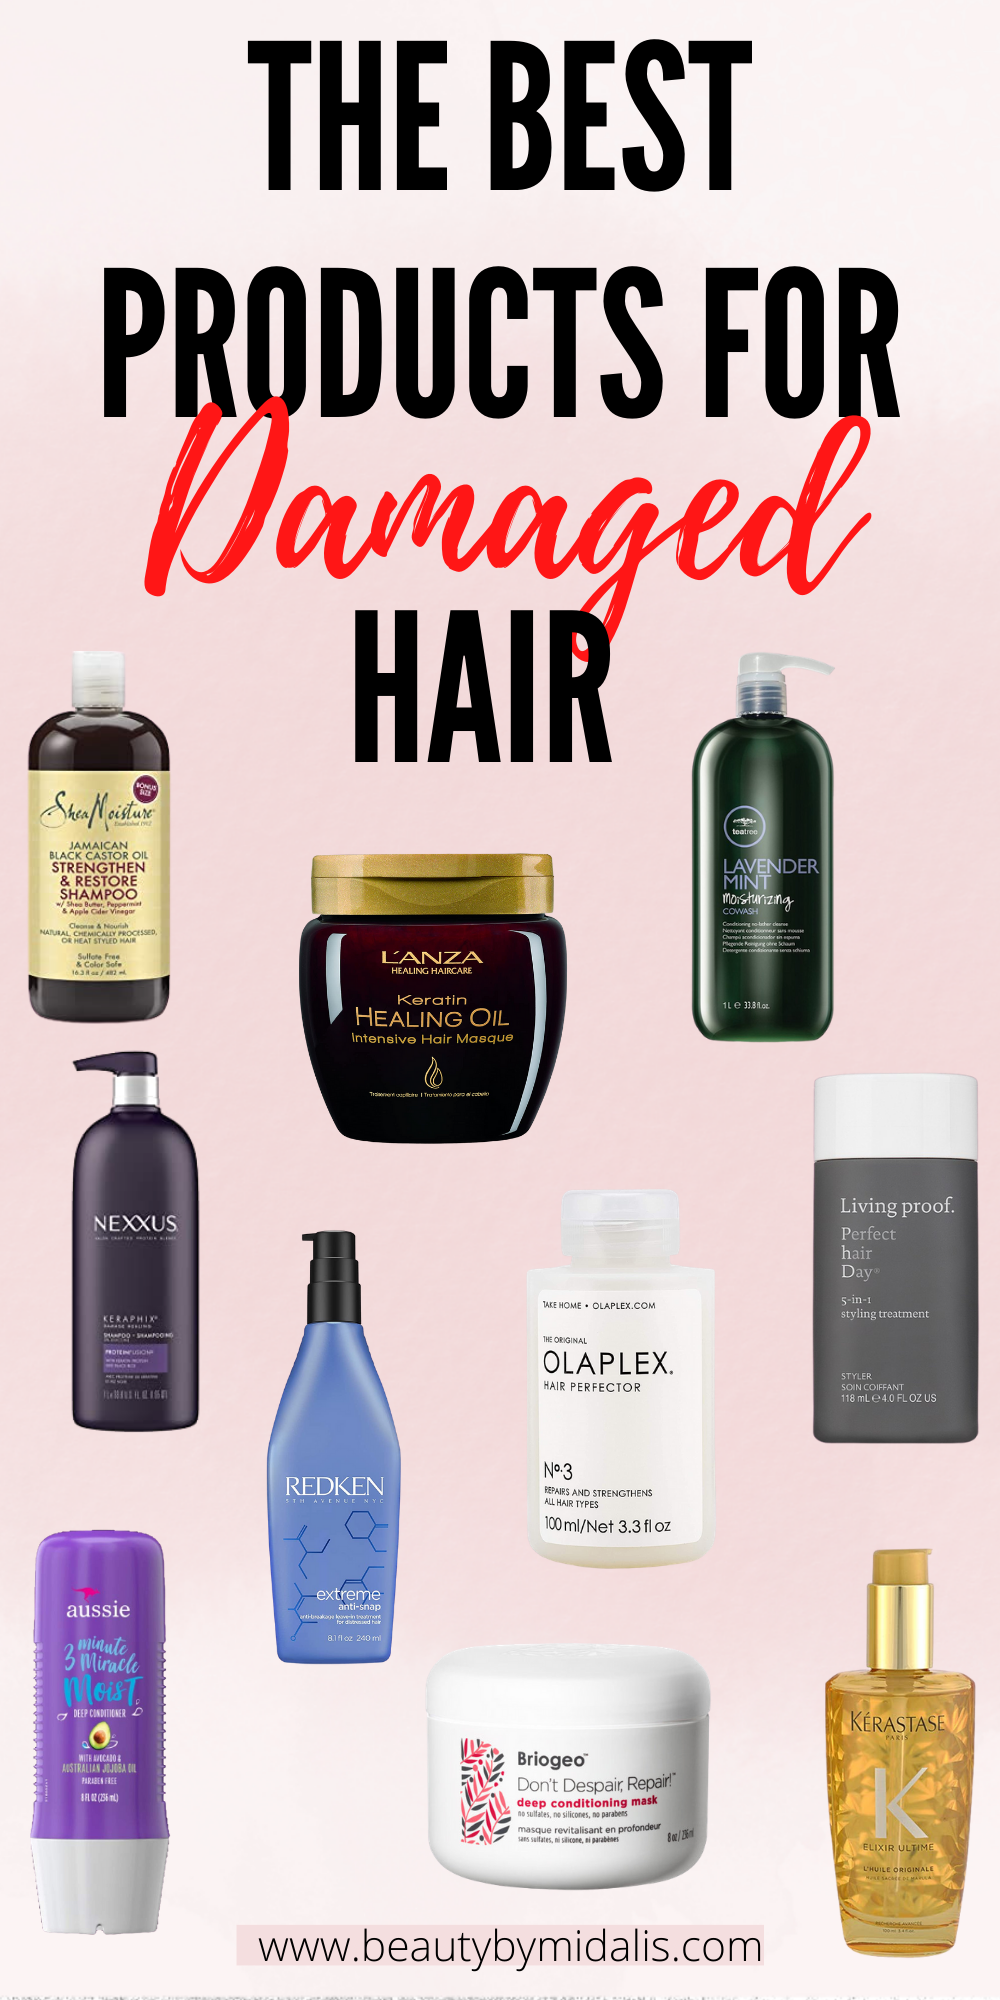 THE BEST PRODUCTS FOR DAMAGED HAIR